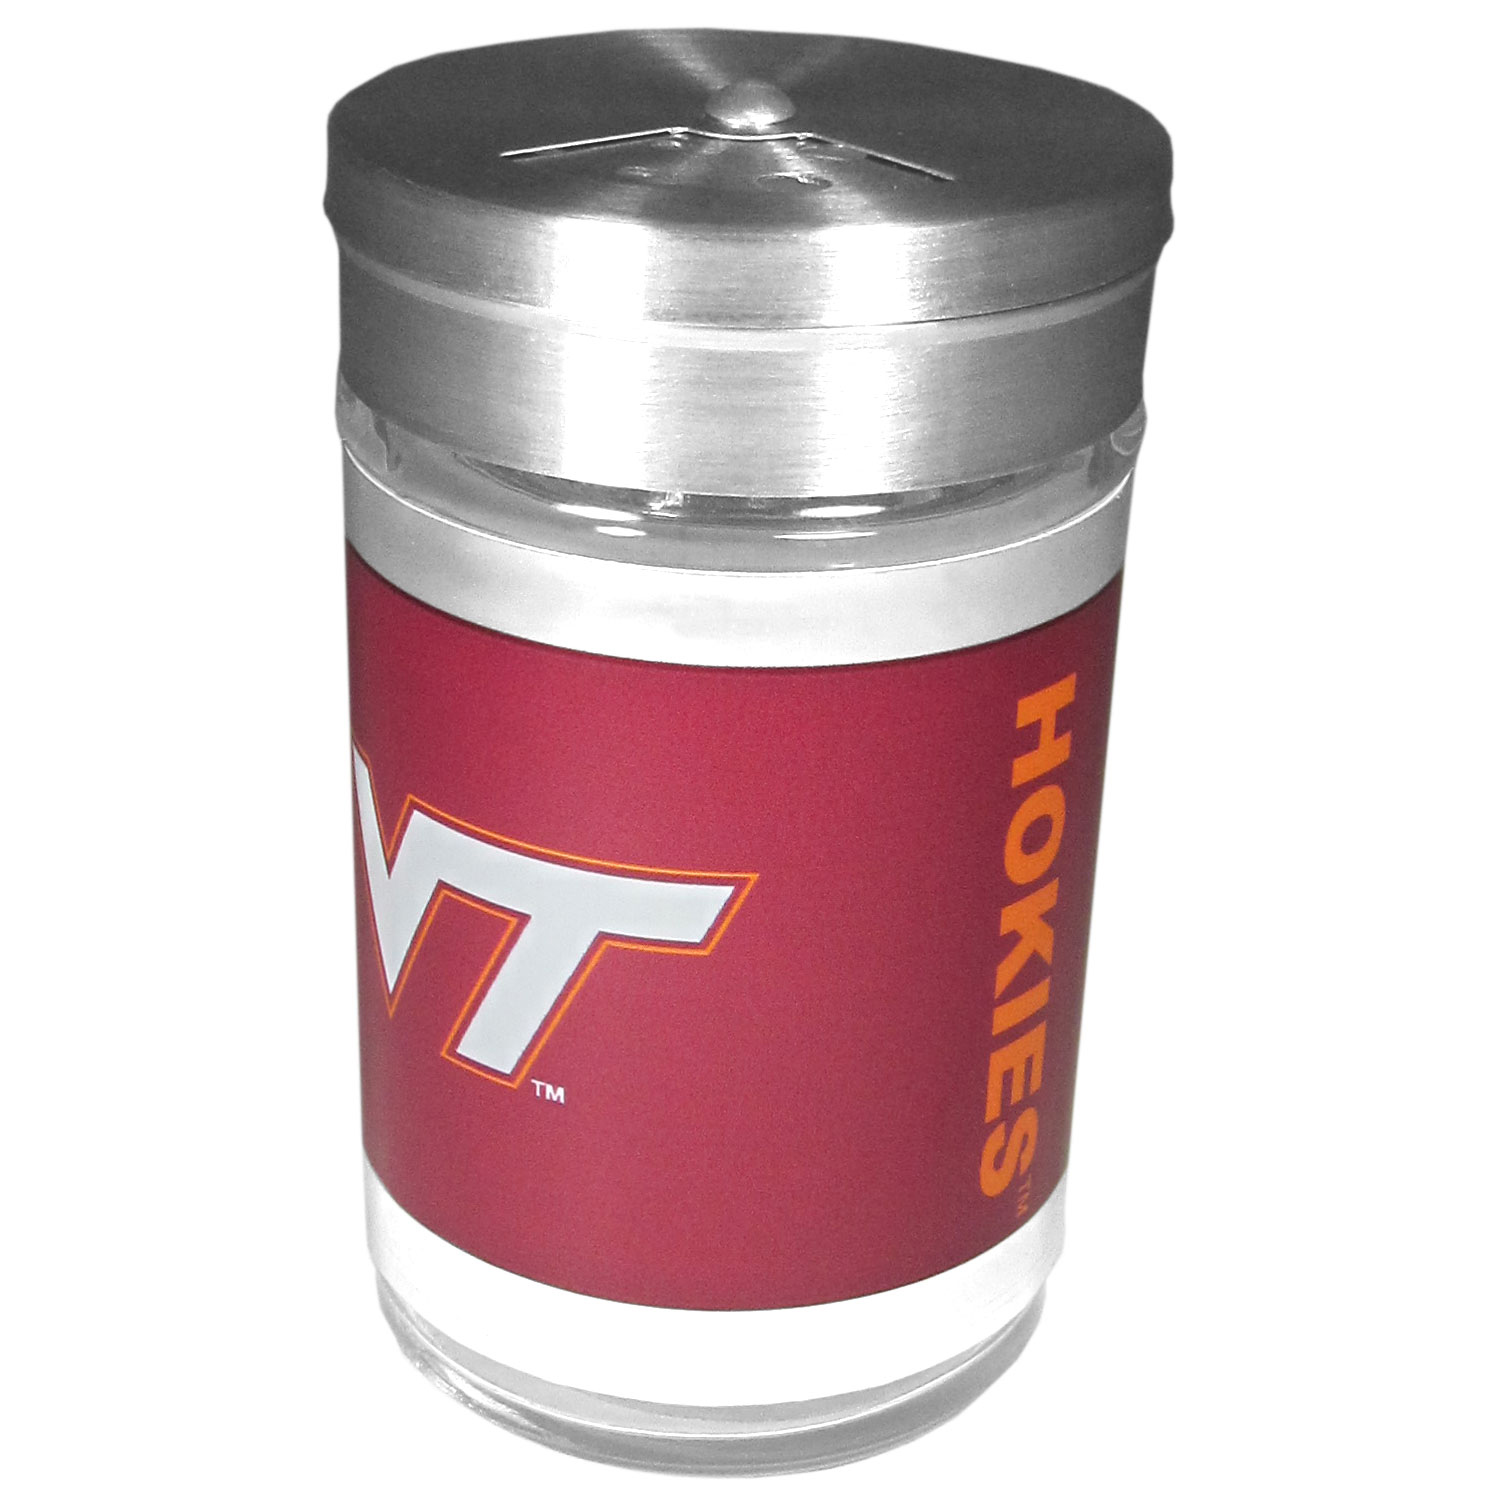 Virginia Tech Hokies Tailgater Season Shakers - Spice it up with our Virginia Tech Hokies tailgater season shakers! This compact shaker is 2 inch tall with a twist top that closes off the holes at the top making it perfect for travel preventing those messy spills. The shaker has wide holes perfect for keeping your pepper seeds or cheese toppings. The bright team graphics will make you the envy of the other fans while you are grilling up your tailgating goodies.